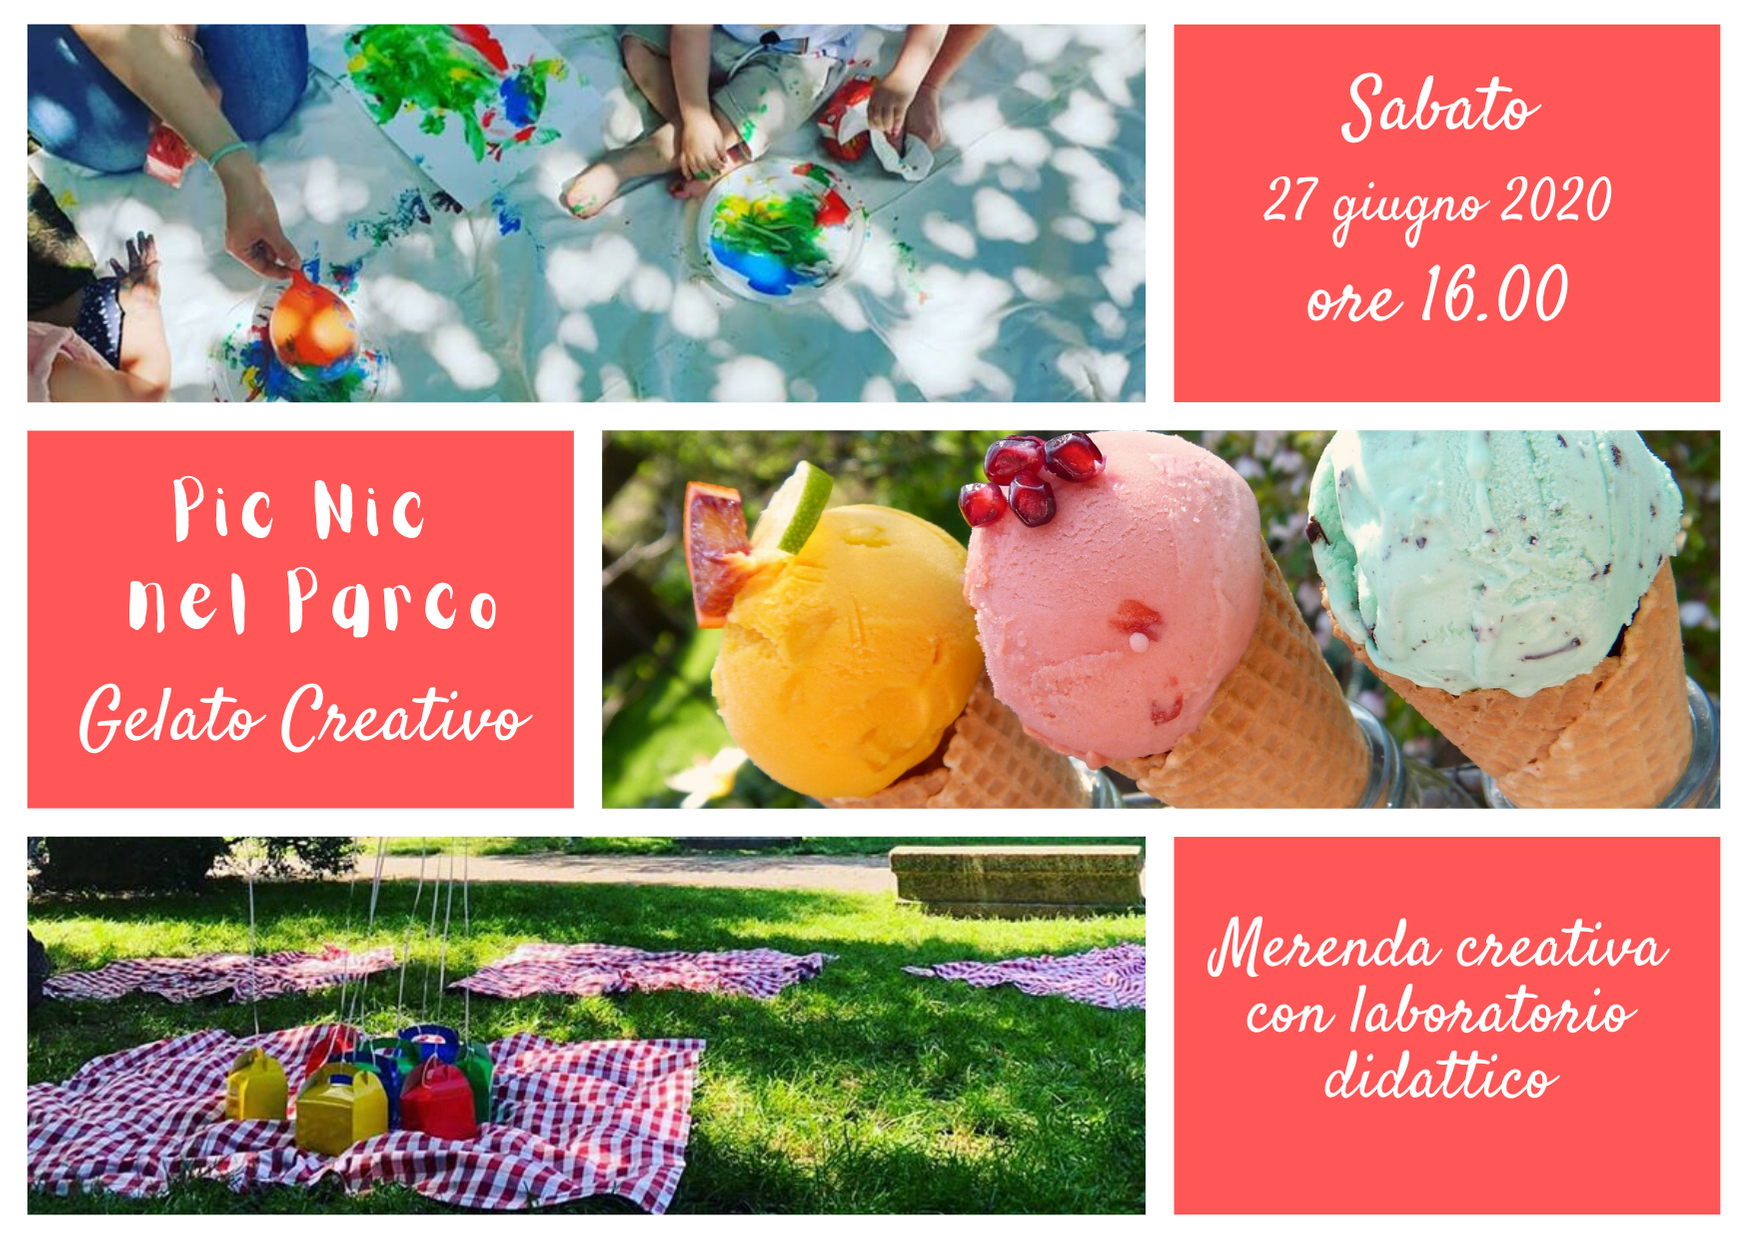 Pic Nic nel Parco